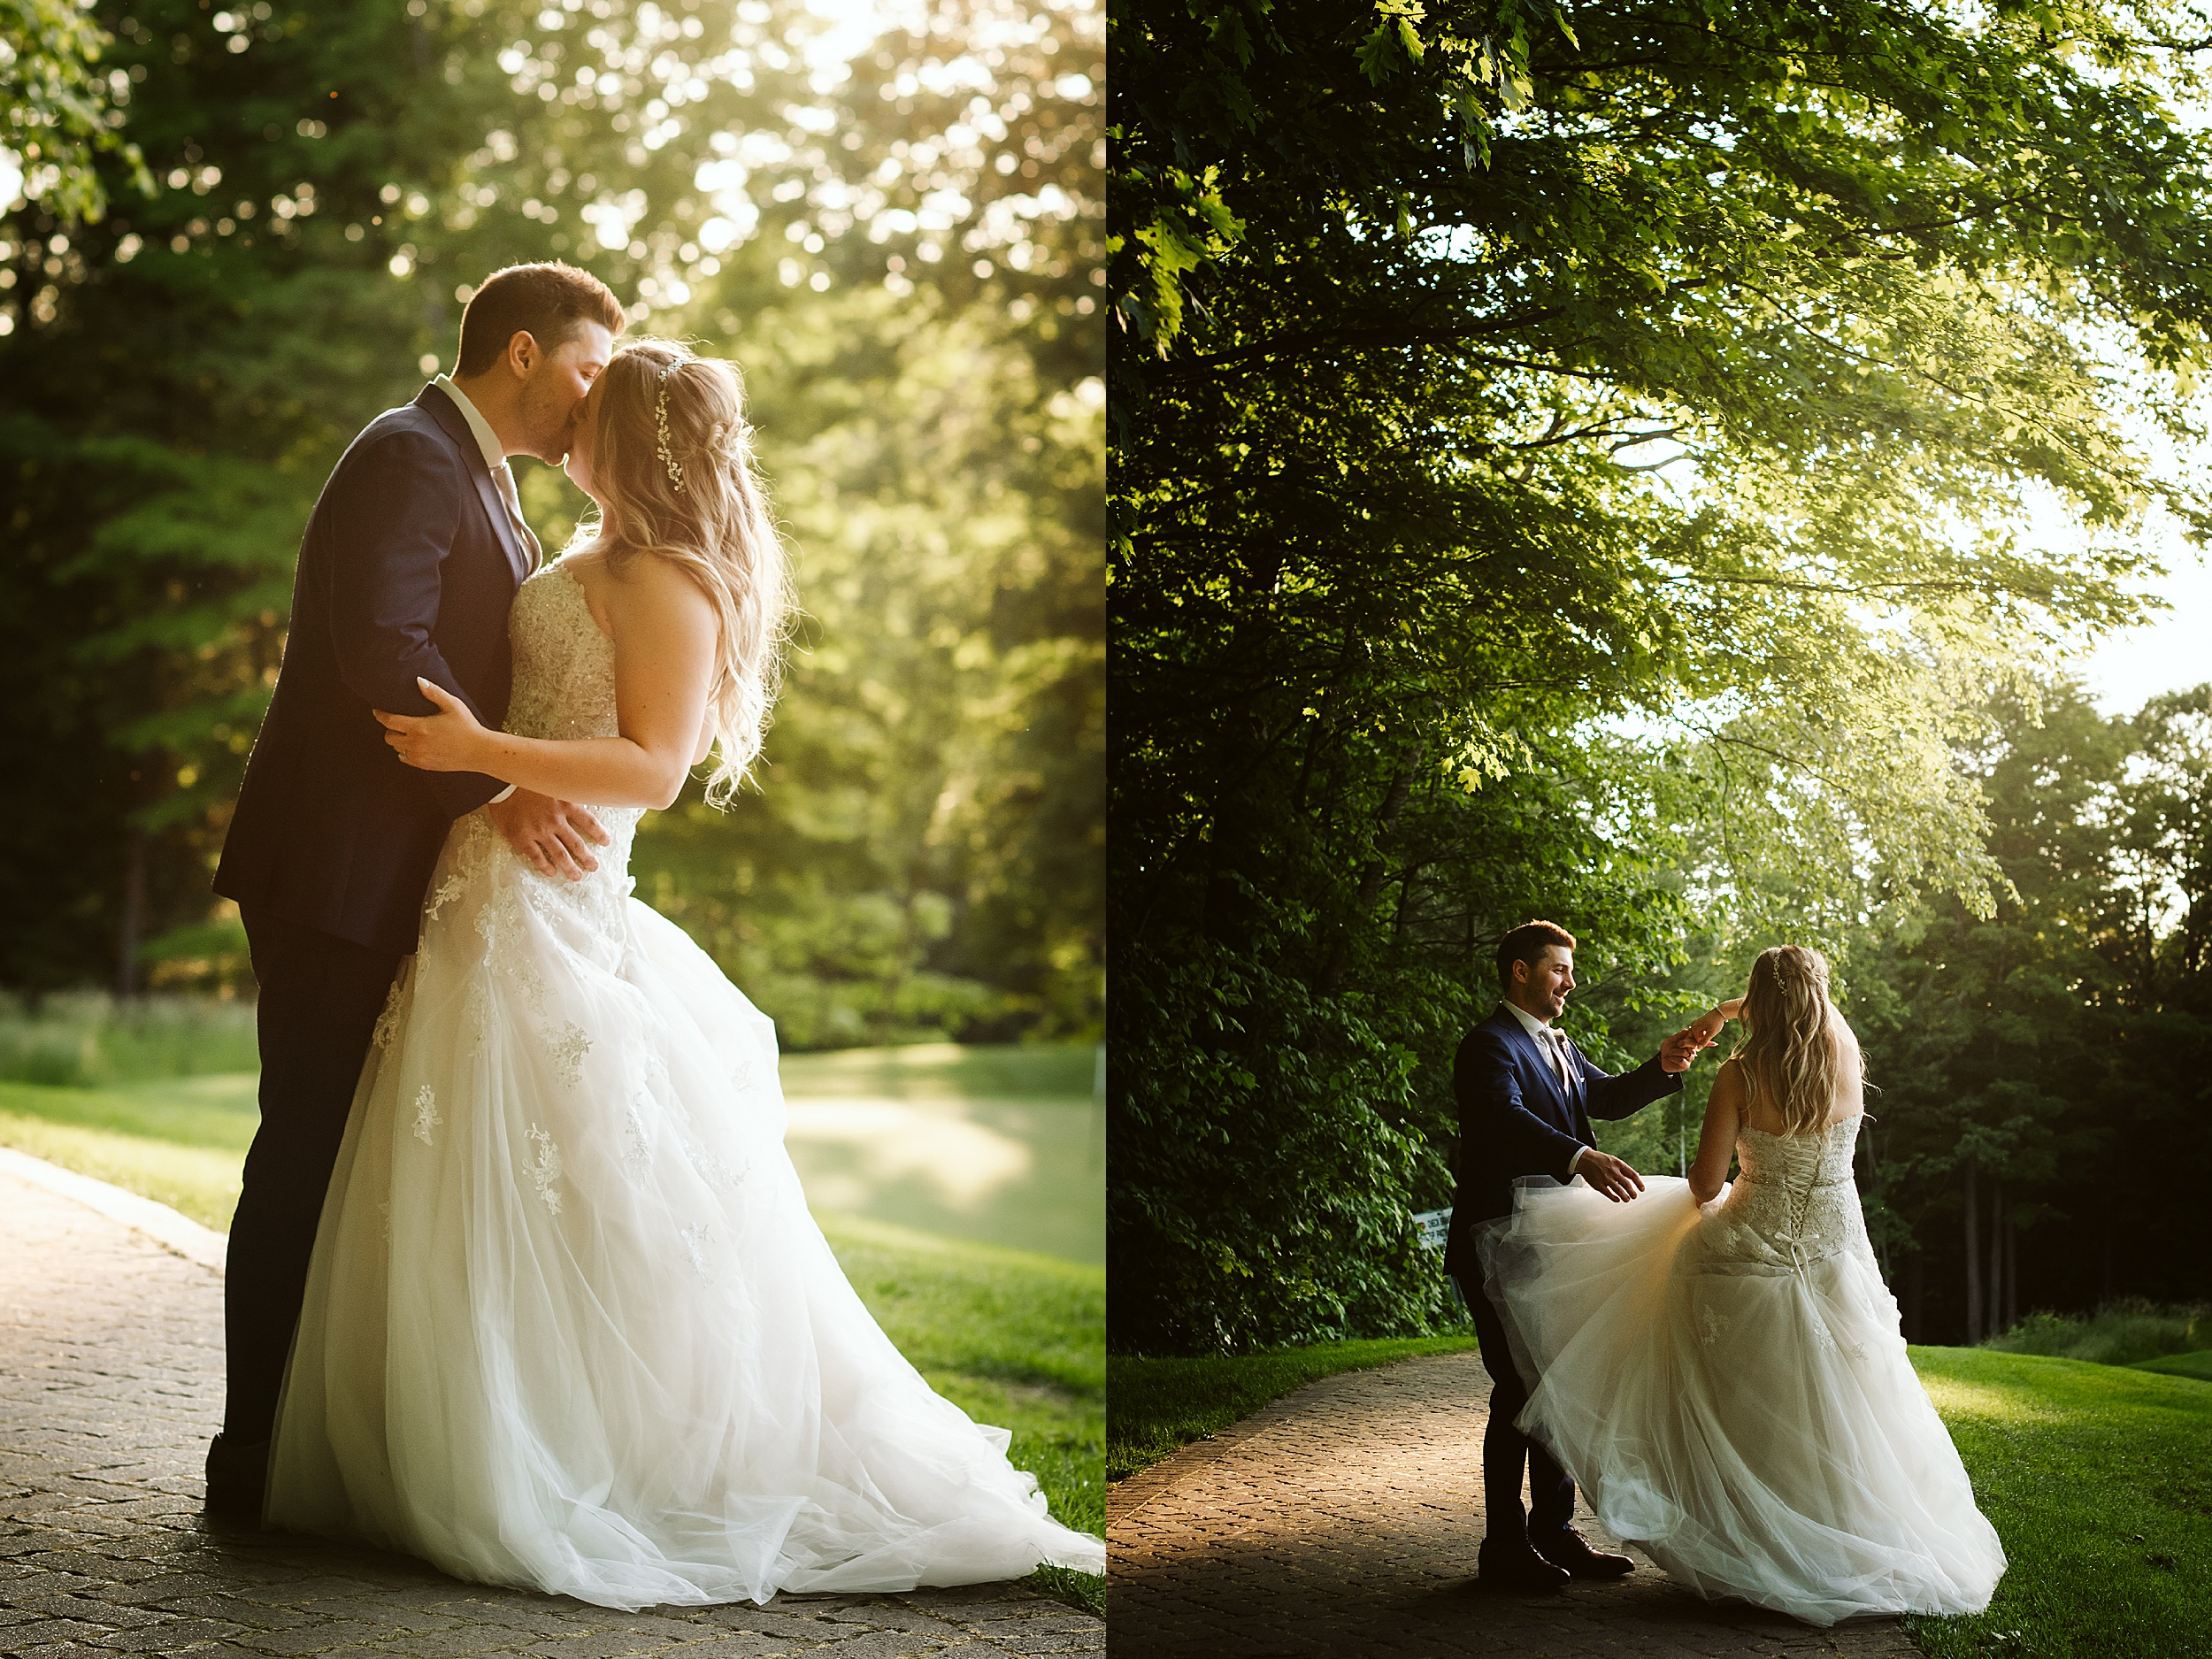 Toronto-Wedding-Photographers-Pheasant-run-golf-club-newmarket_0033.jpg